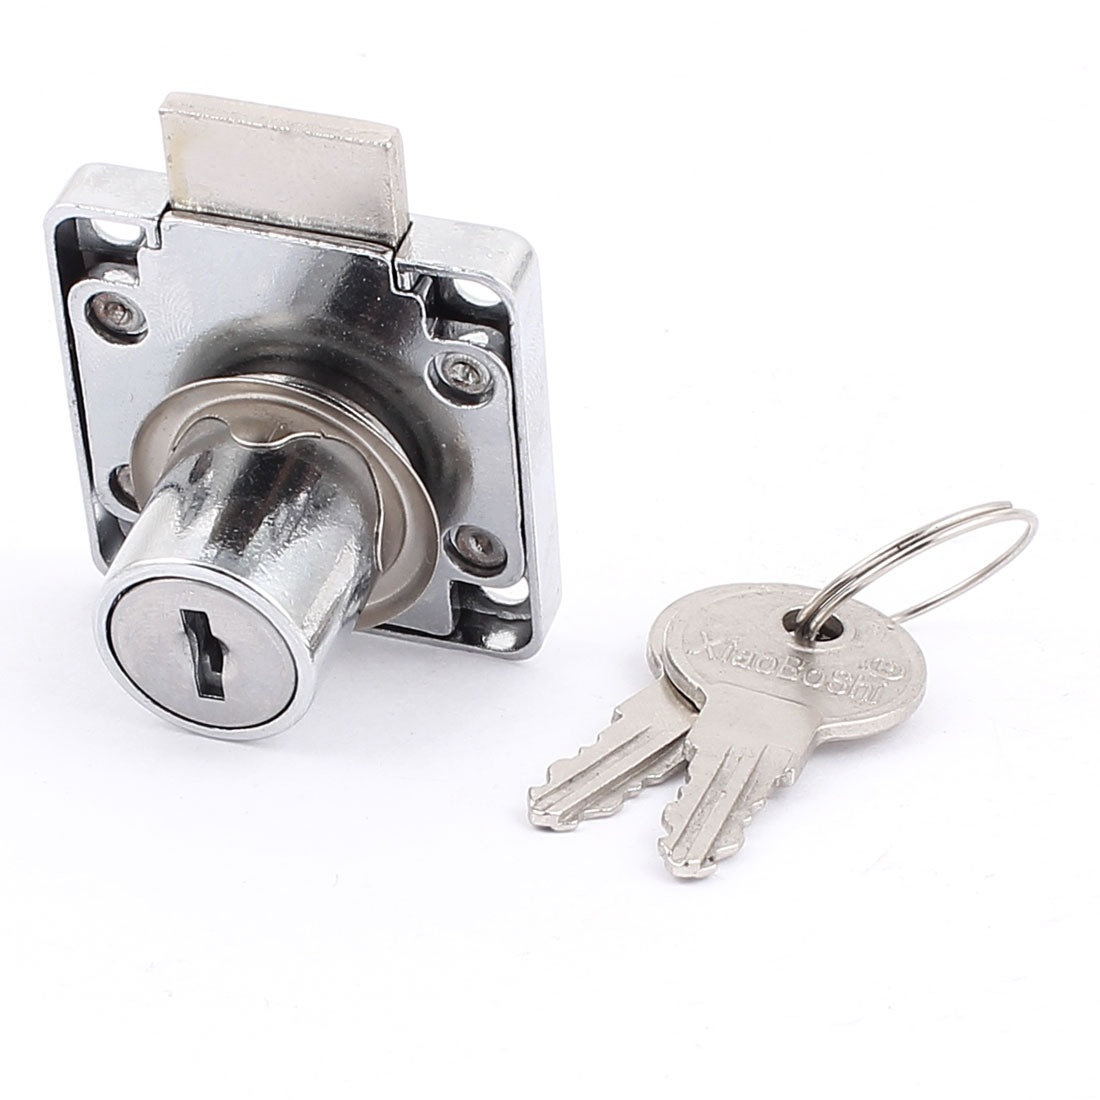 Home Desk Drawer Hardware Cabinet Security Lock 40mm x 39mm w Keys